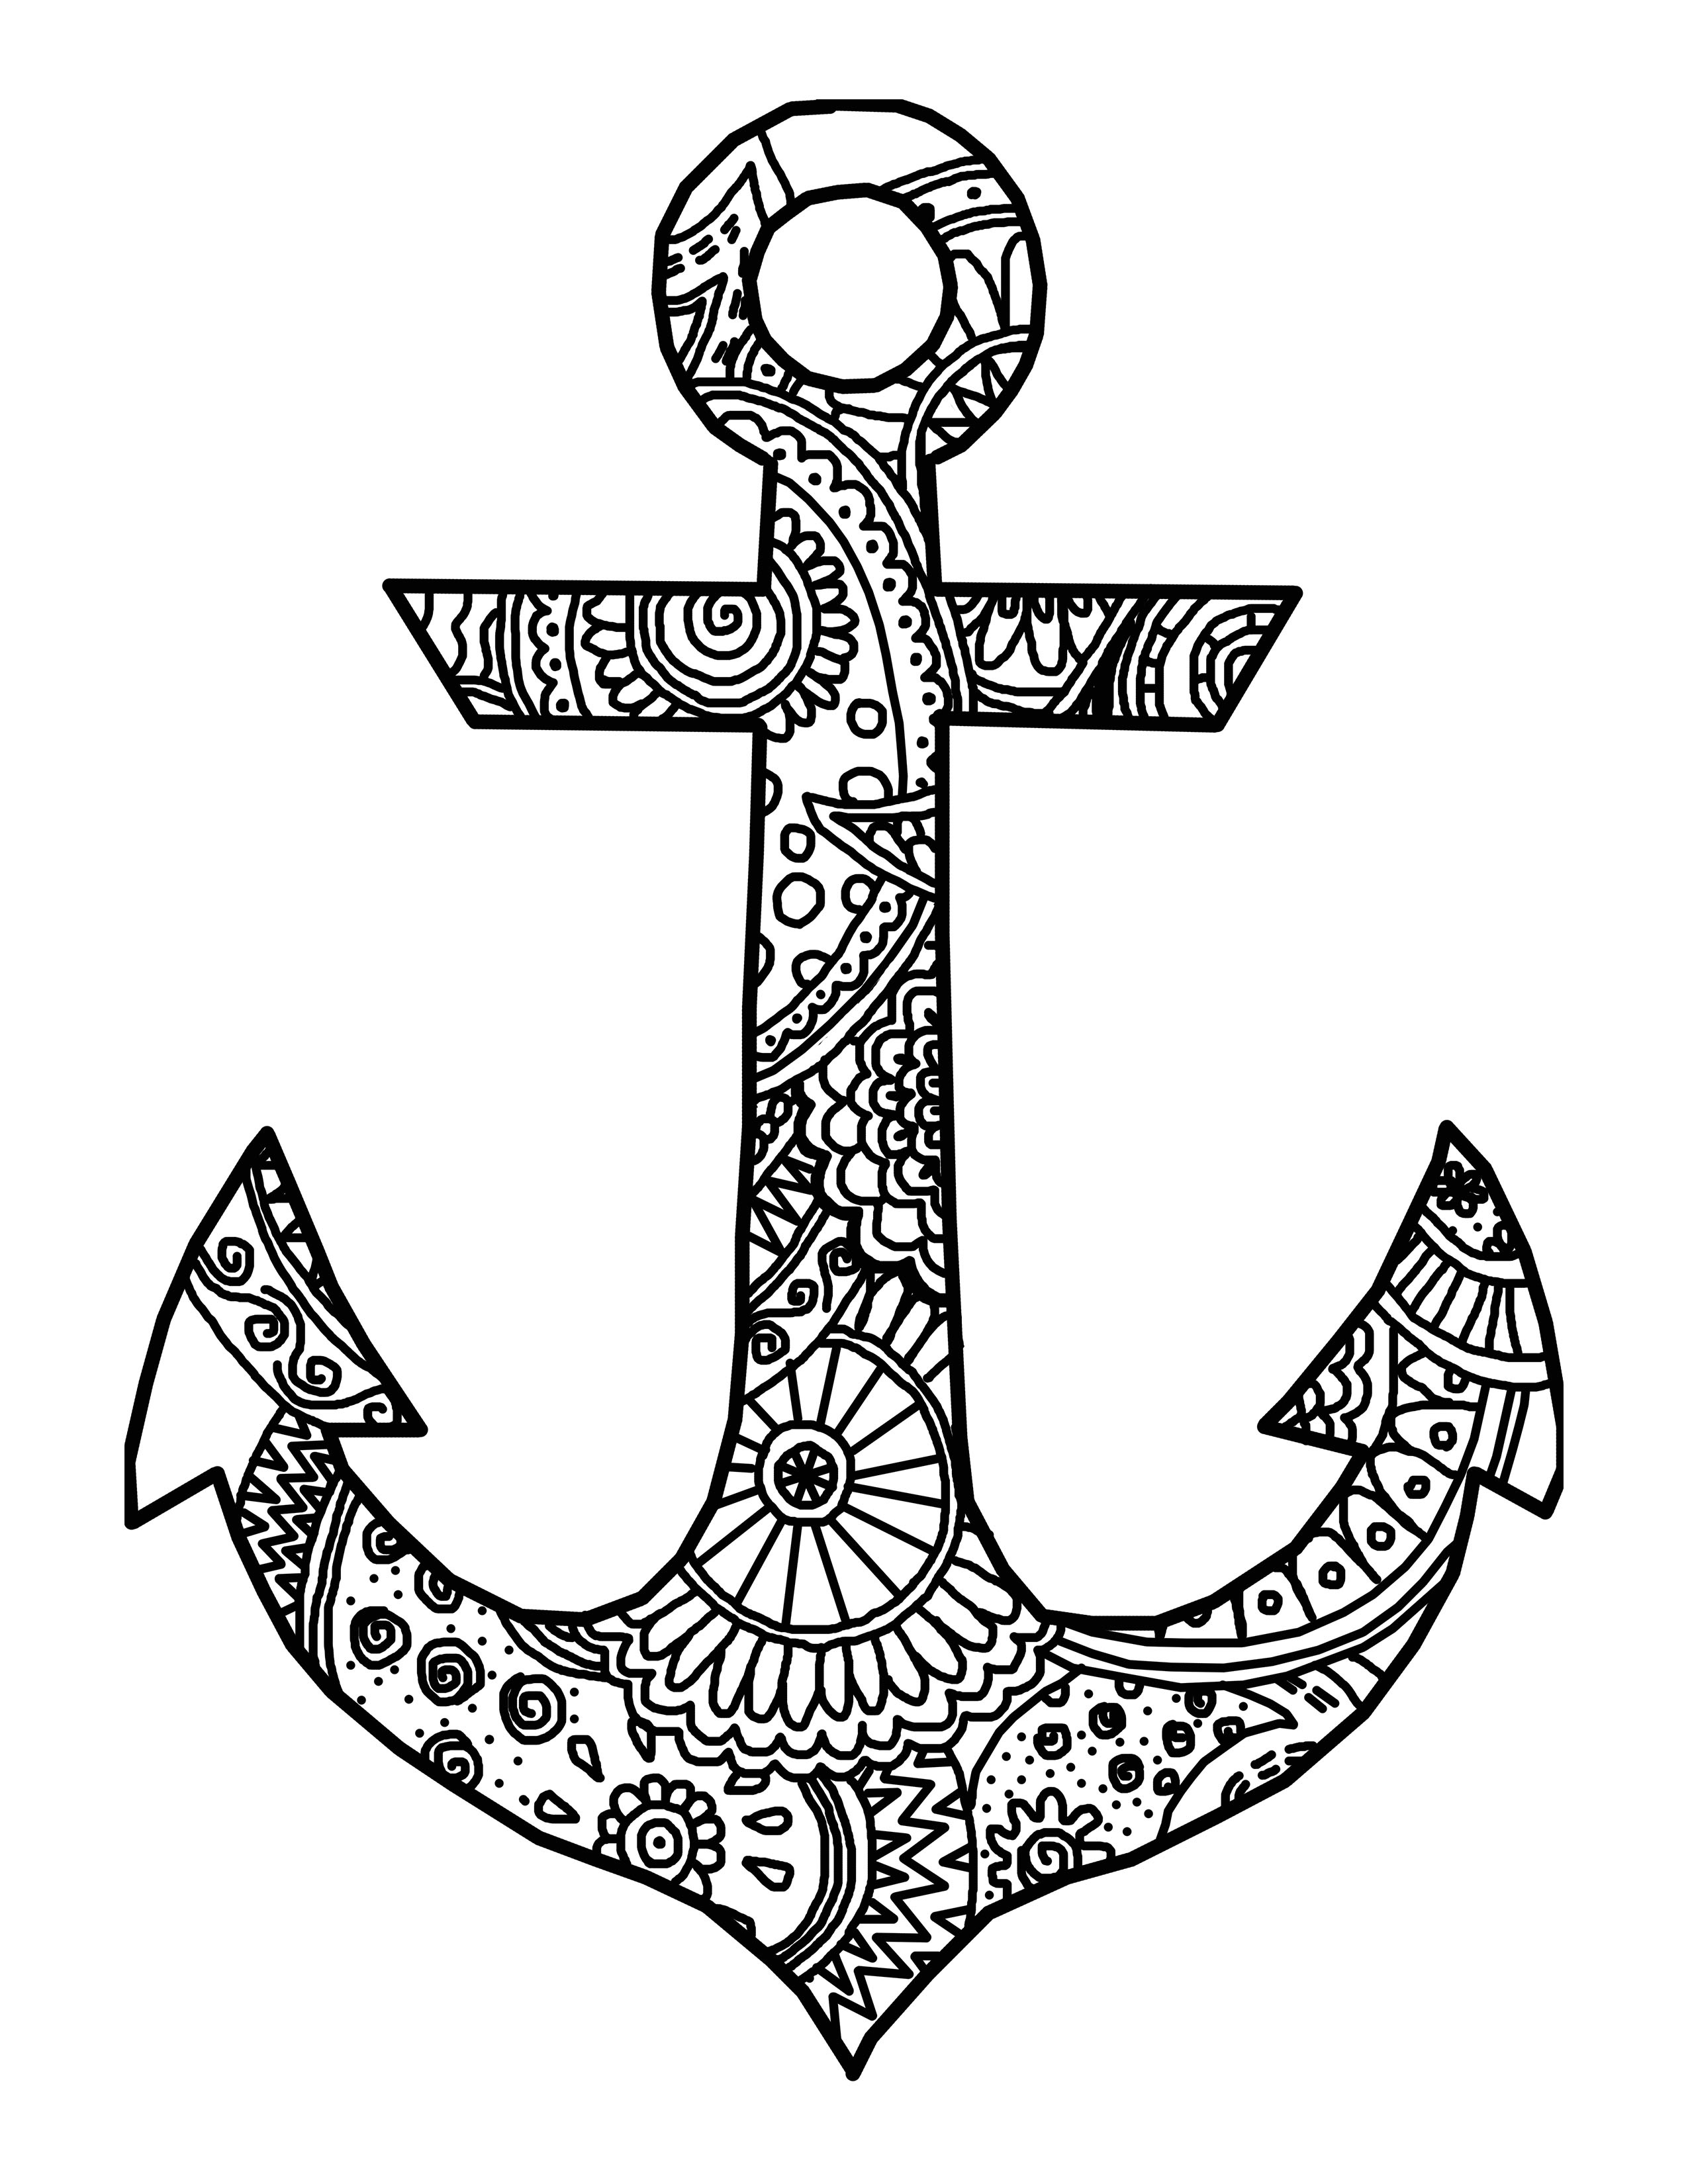 2550x3300 Reduced Coloring Pages Of Anchors Anchor